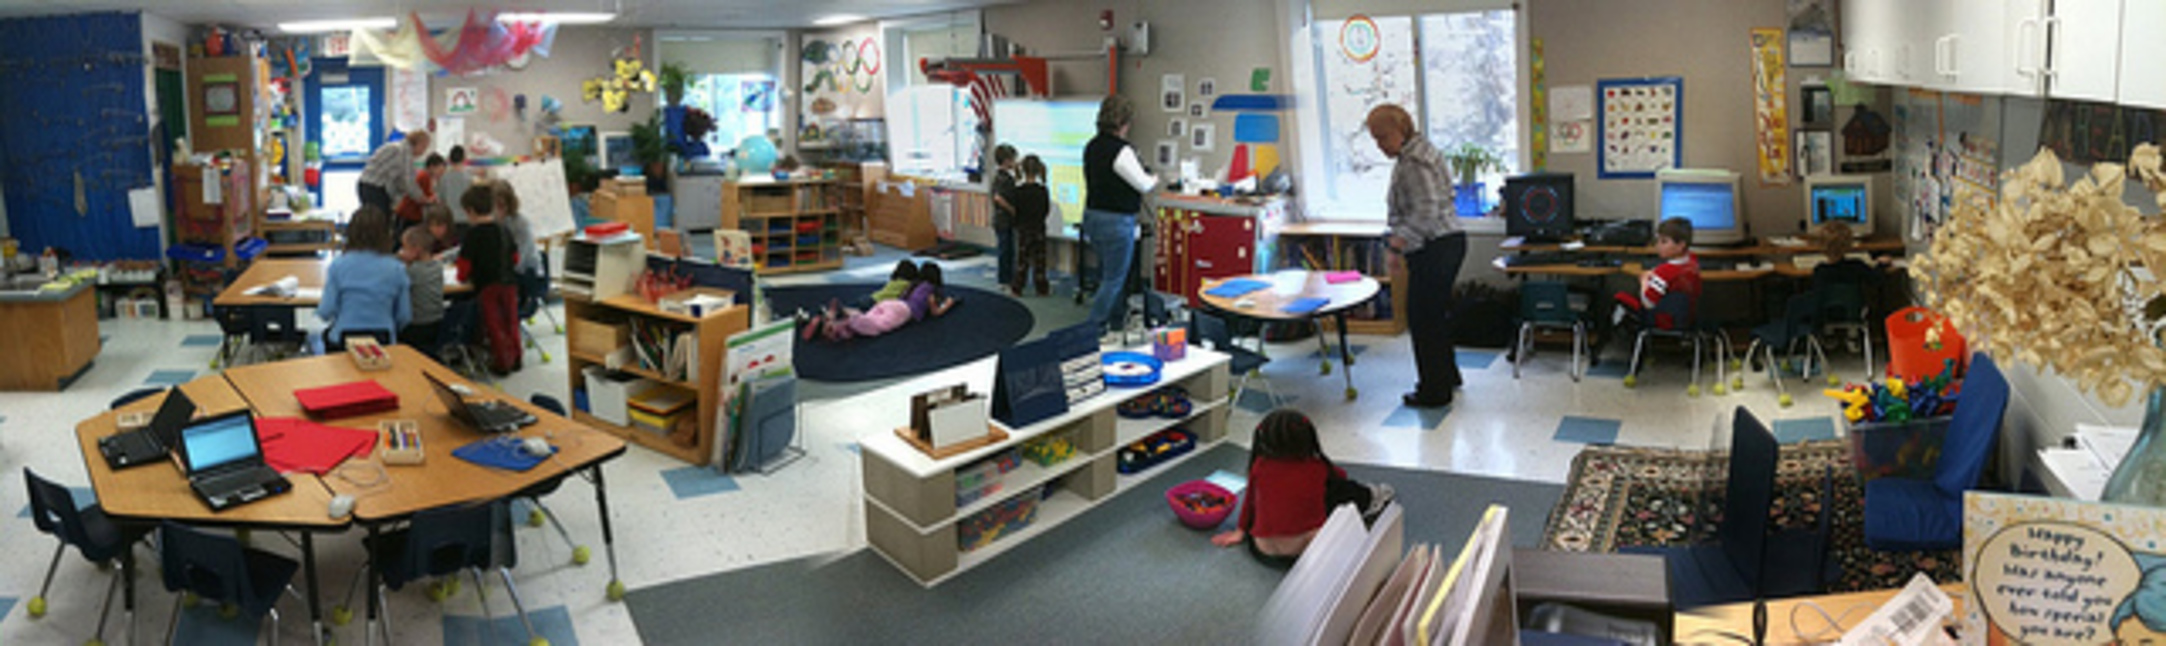 Classroom Design For Blind Students : Students struggle to hear teacher in new fad open plan